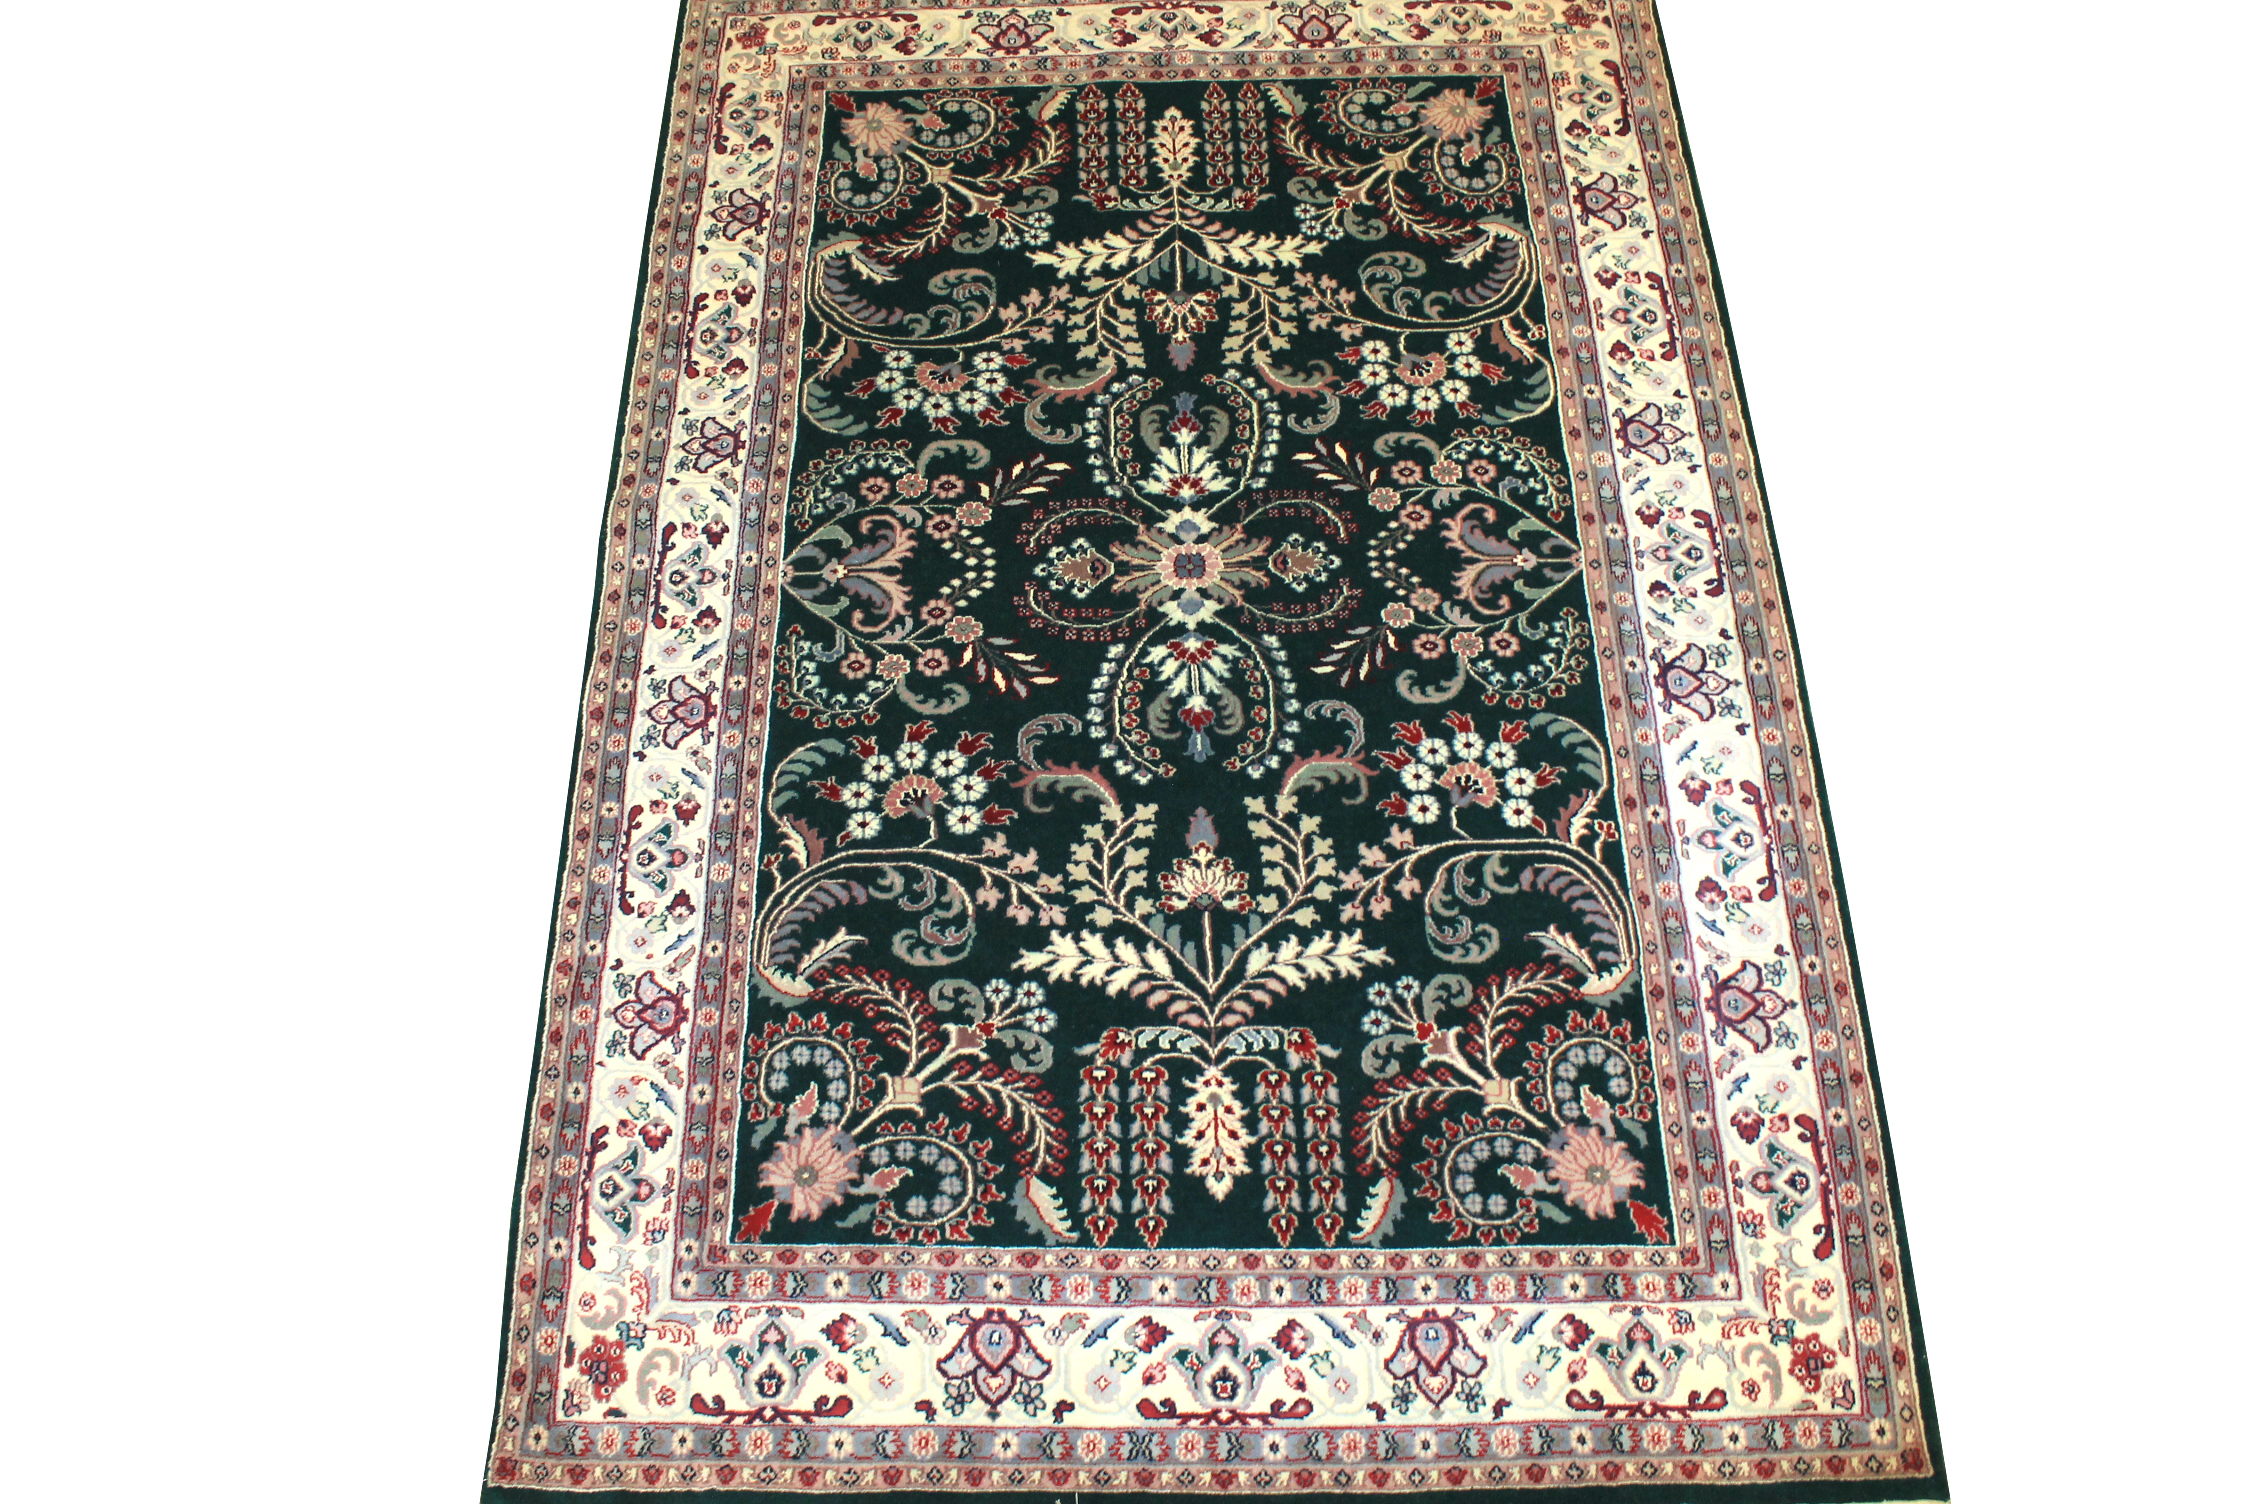 6x9 Traditional Hand Knotted Wool Area Rug - MR0190